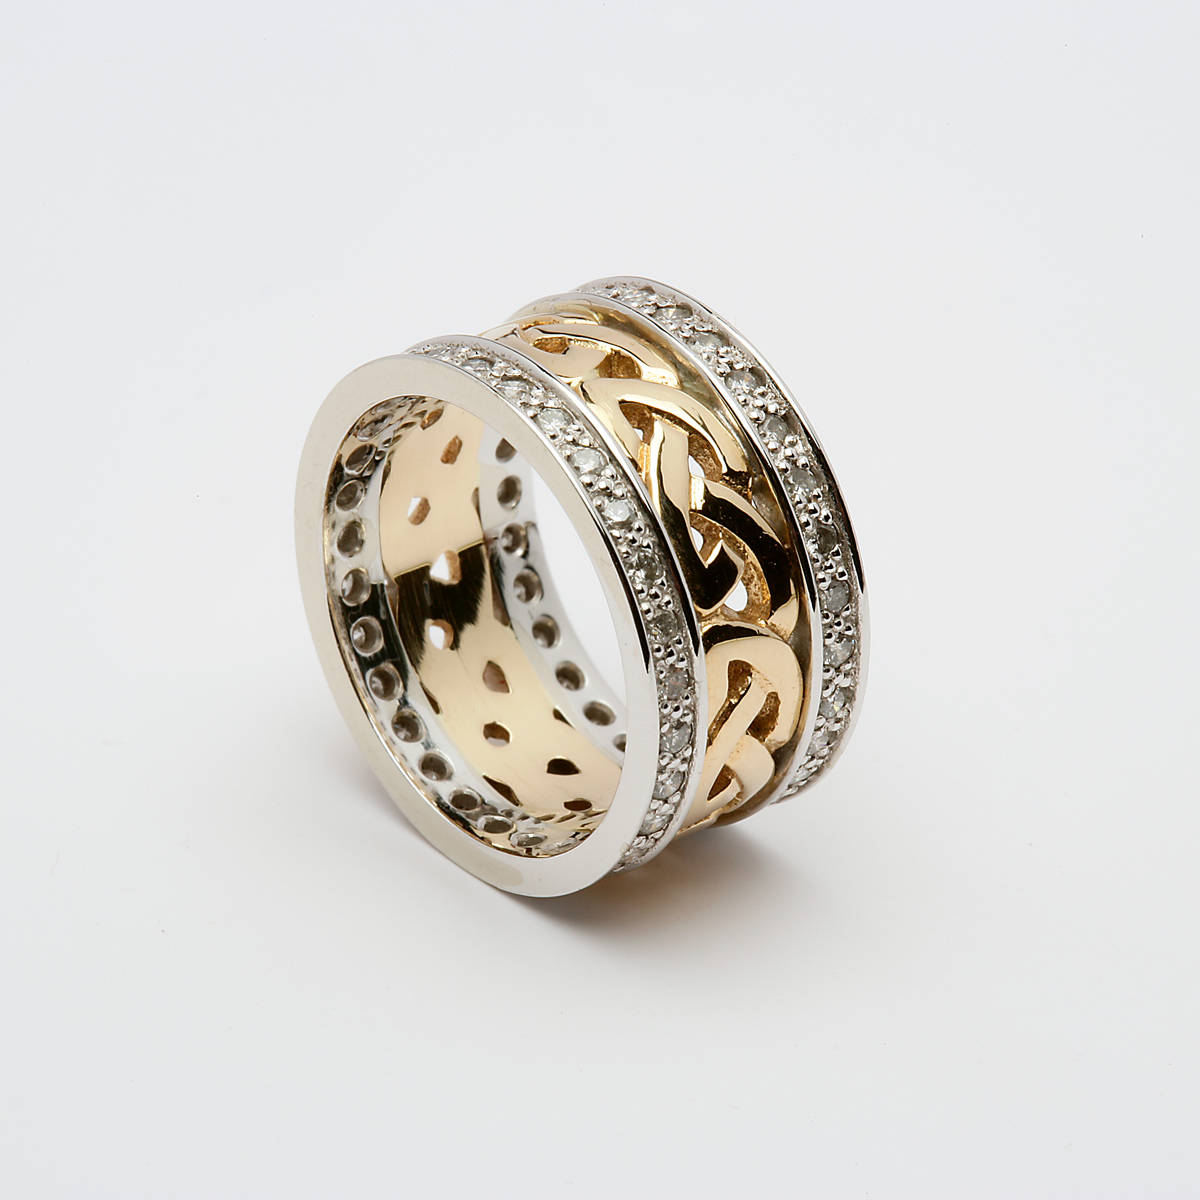 10ct yellow gold ladies open Celtic Knot wedding band with white gold heavy outer rims set with diamonds.  Width: 9.5 mm